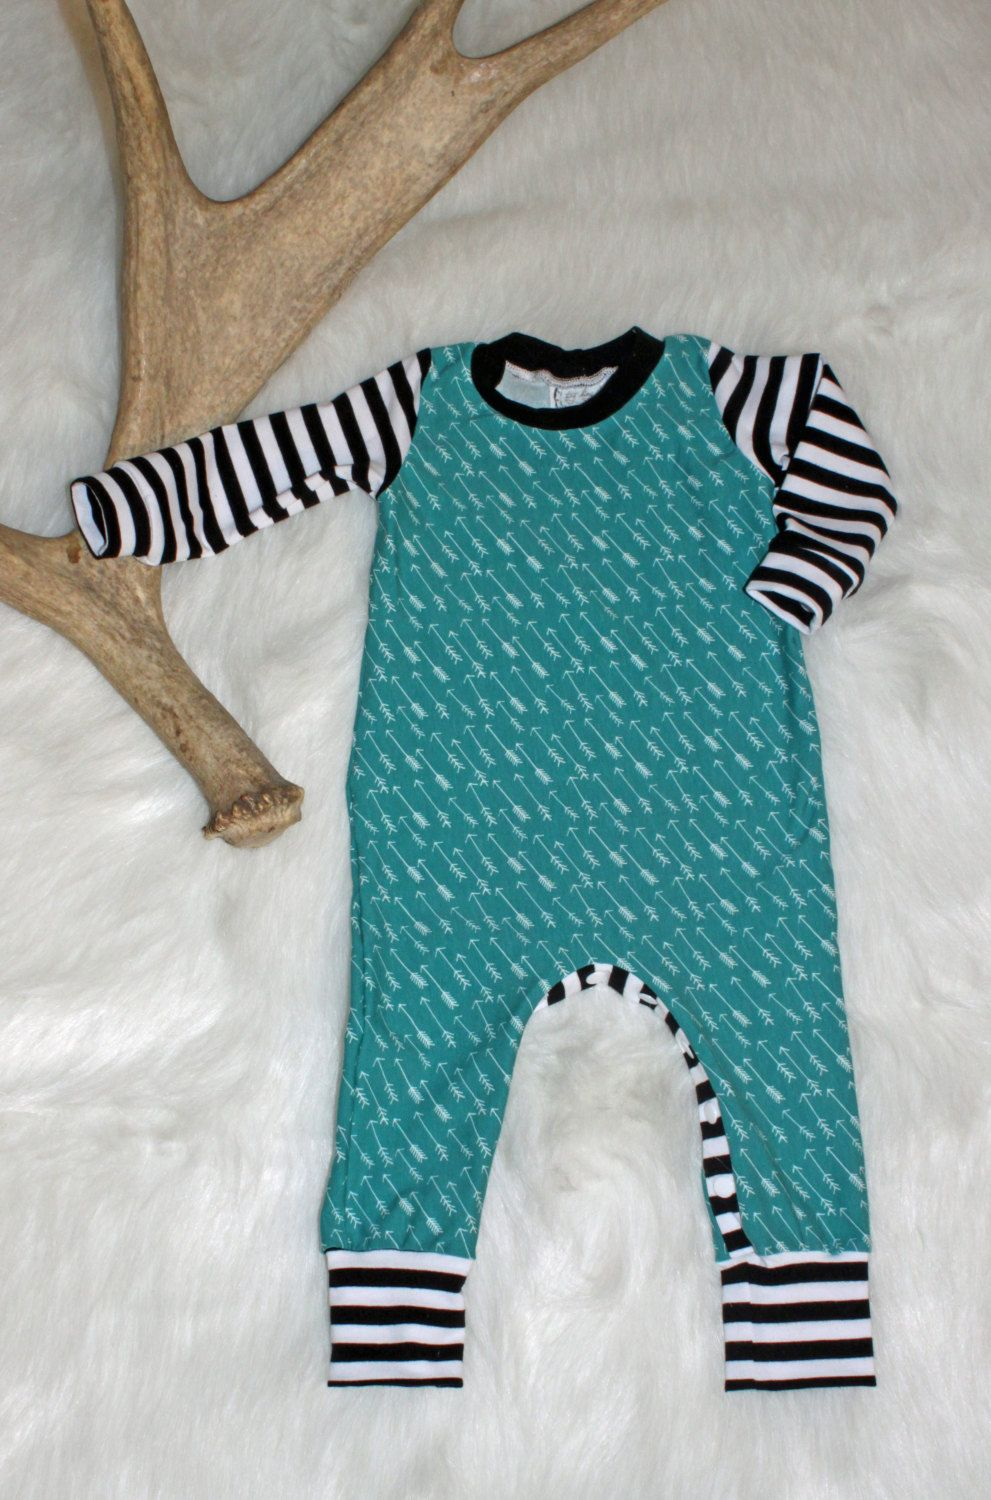 ae491a567d6 Baby Boy Romper   Arrows   Black and White Stripes   One Piece   Bodysuit    Rompaloons   Cloth Diaper   Toddler   Coming Home Outfit   Style by ...